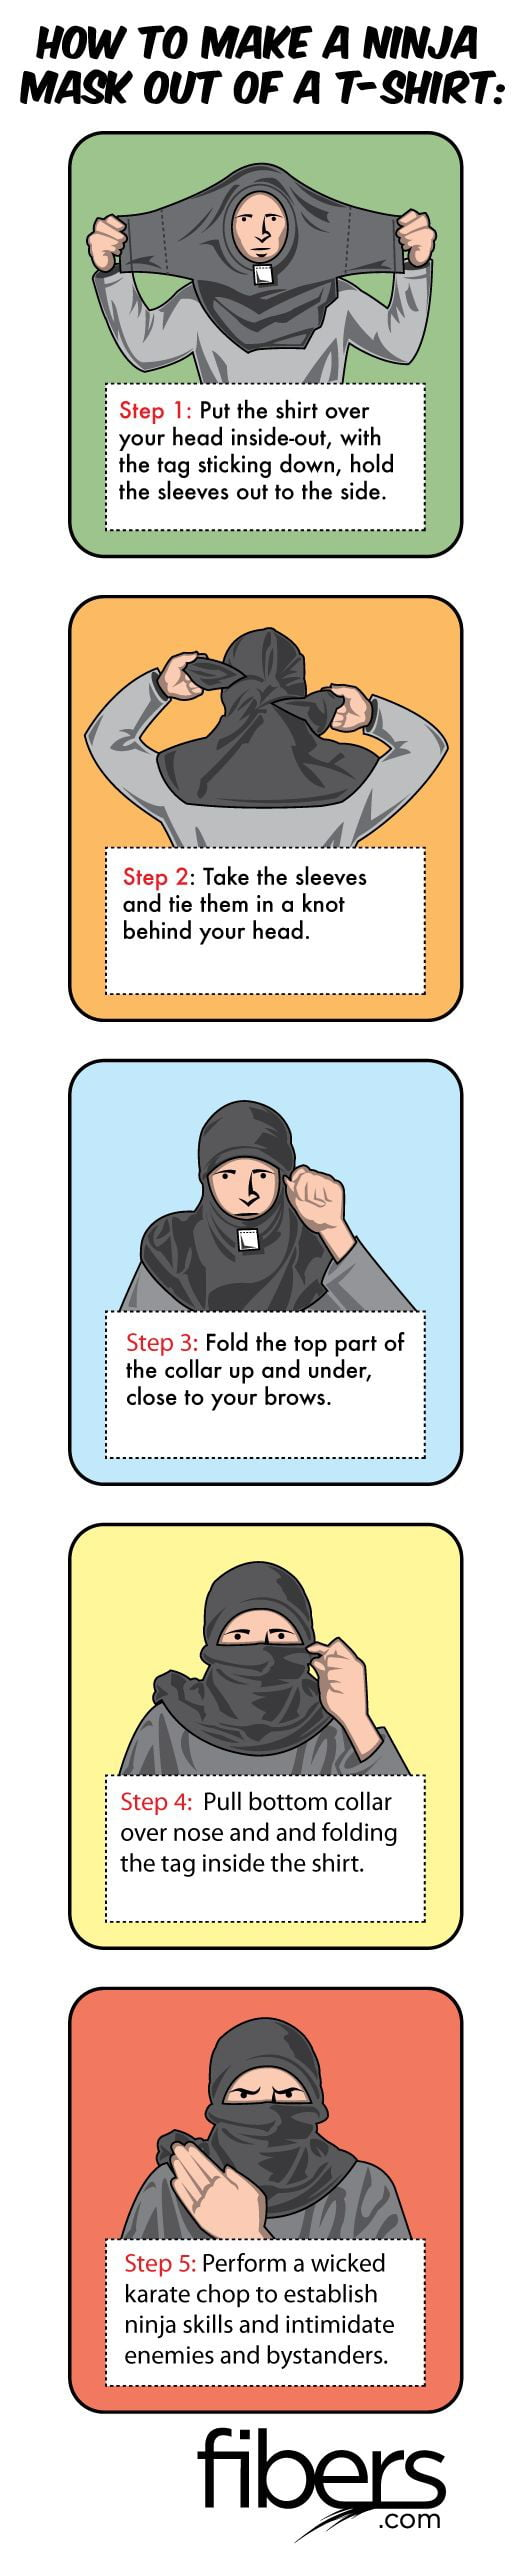 HOW TO MAKE A NINJA MM OUT OF A T-QHIRT:  ' Step 'I: Put the shirt over  ' your head insideout, with the tag sticking down, hold the sleeves out to the side.     . Step 2: Take the sleeves and tie them in a knot behind your head.  I Step 3: Fold the top part of I : the collar up and under, close to your brows.  I Step 4: Pull bottom collar 5 over nose and and folding the tag inside the shirt.  Step 5: Perform a wicked karate chop to establish ninja skills and intimidate enemies and bystanders.     .COm